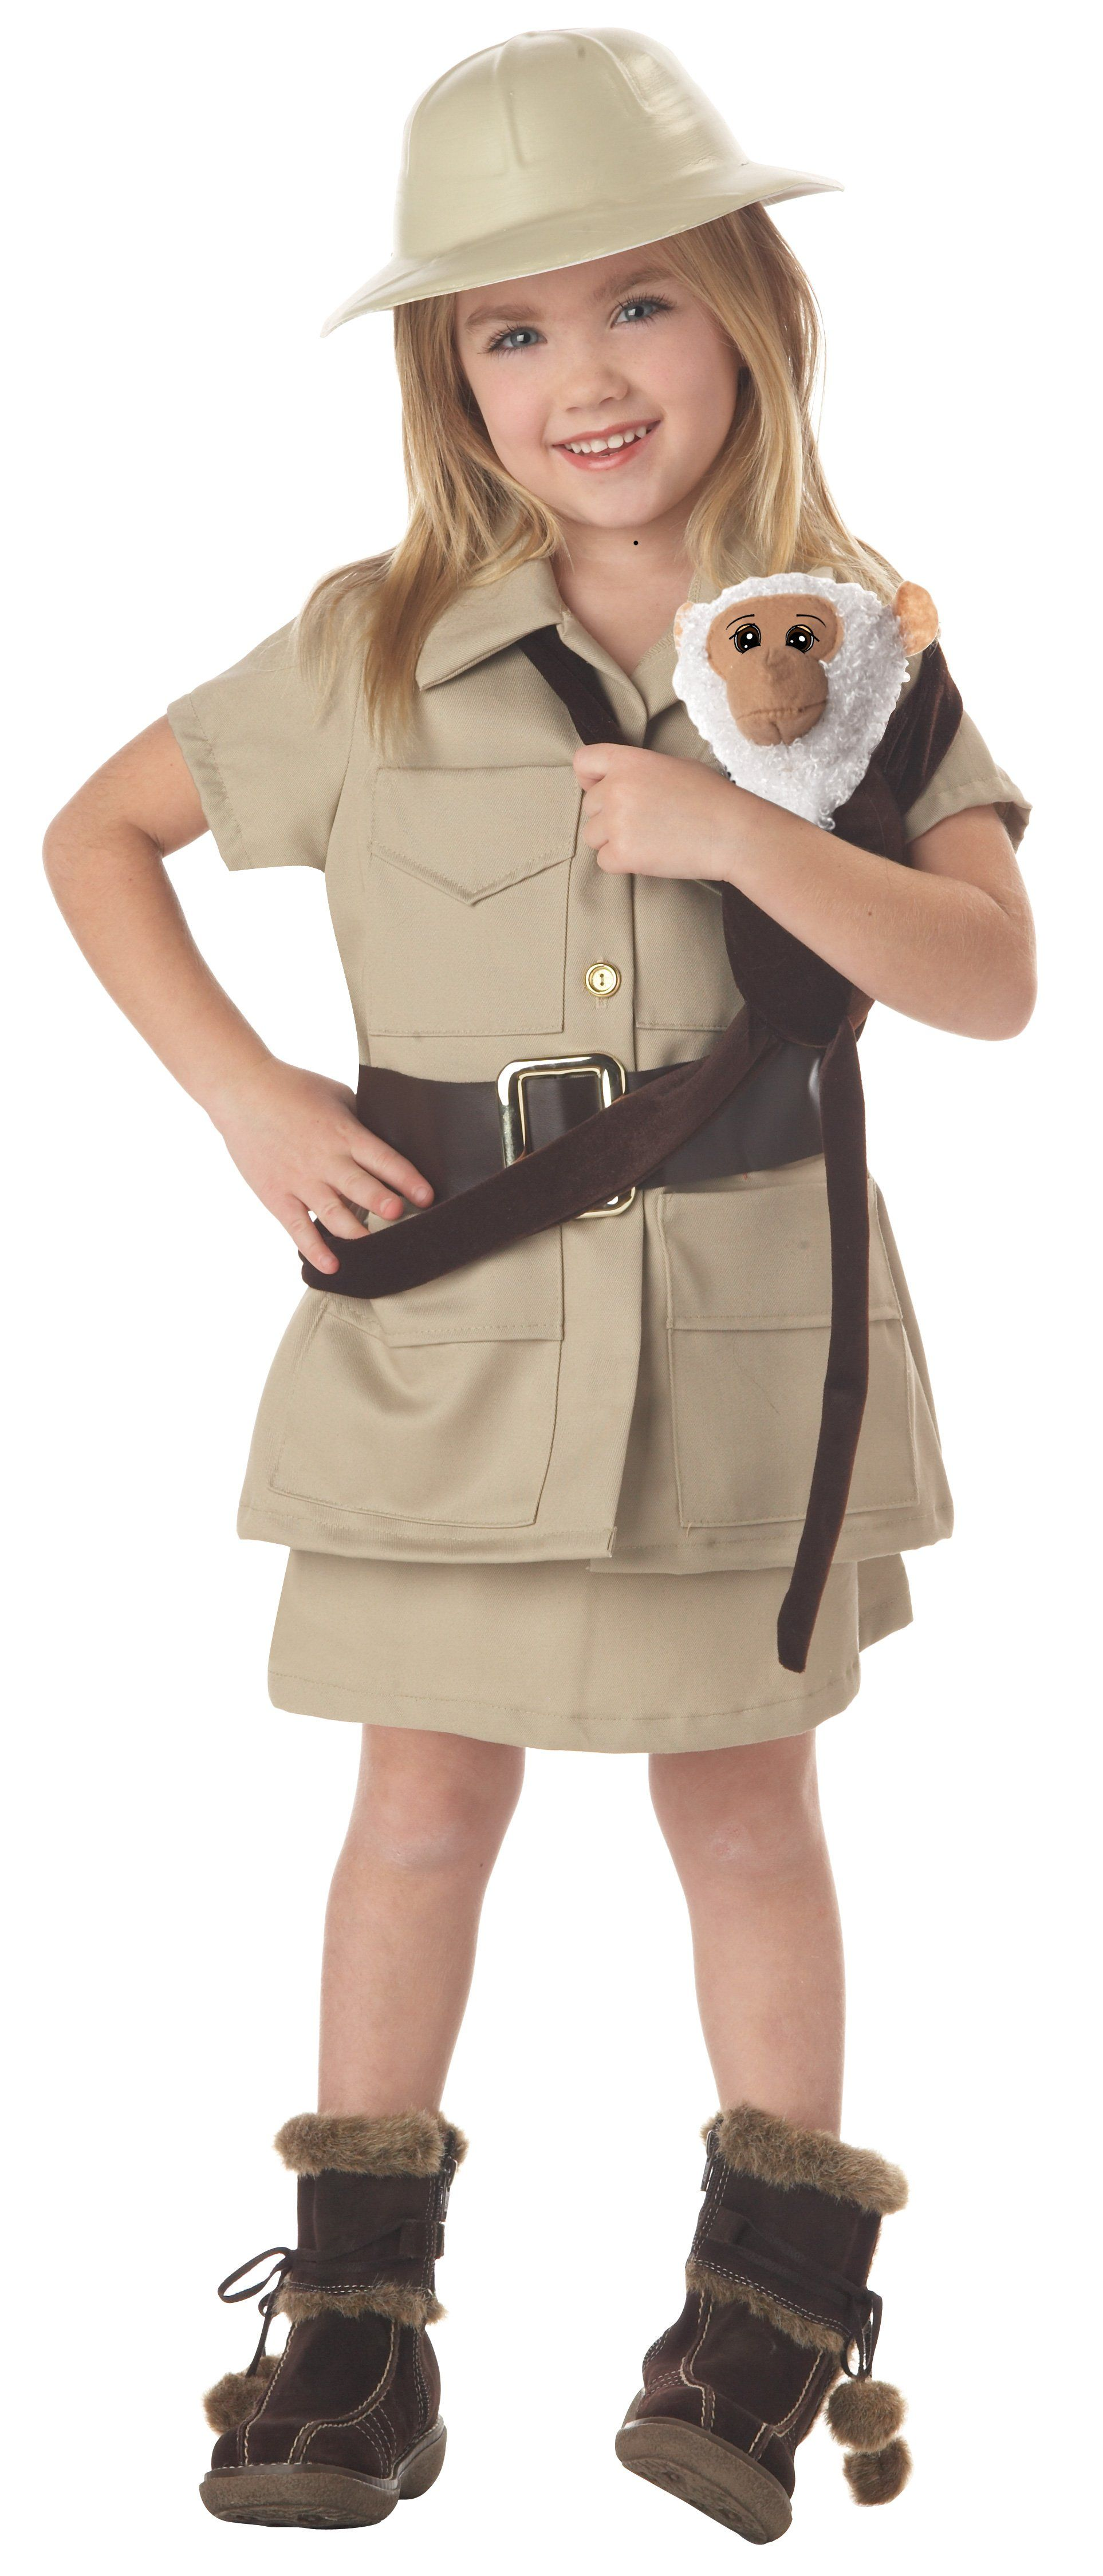 Pilot Boy Airline Pilot Costume for Kids HalloweenCostumes4u.com ...